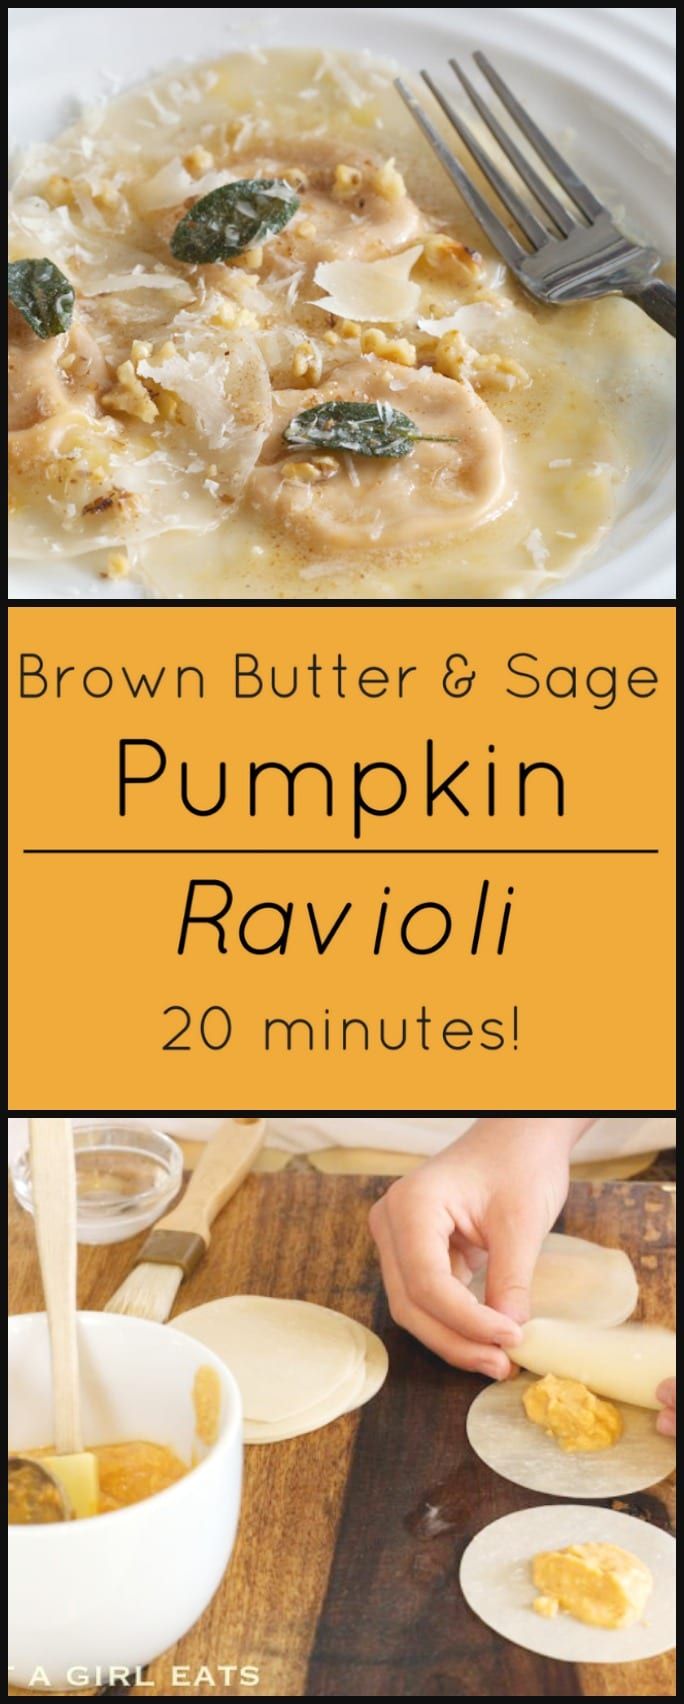 20 minute Pumpkin Ravioli with Brown Butter and Sage.